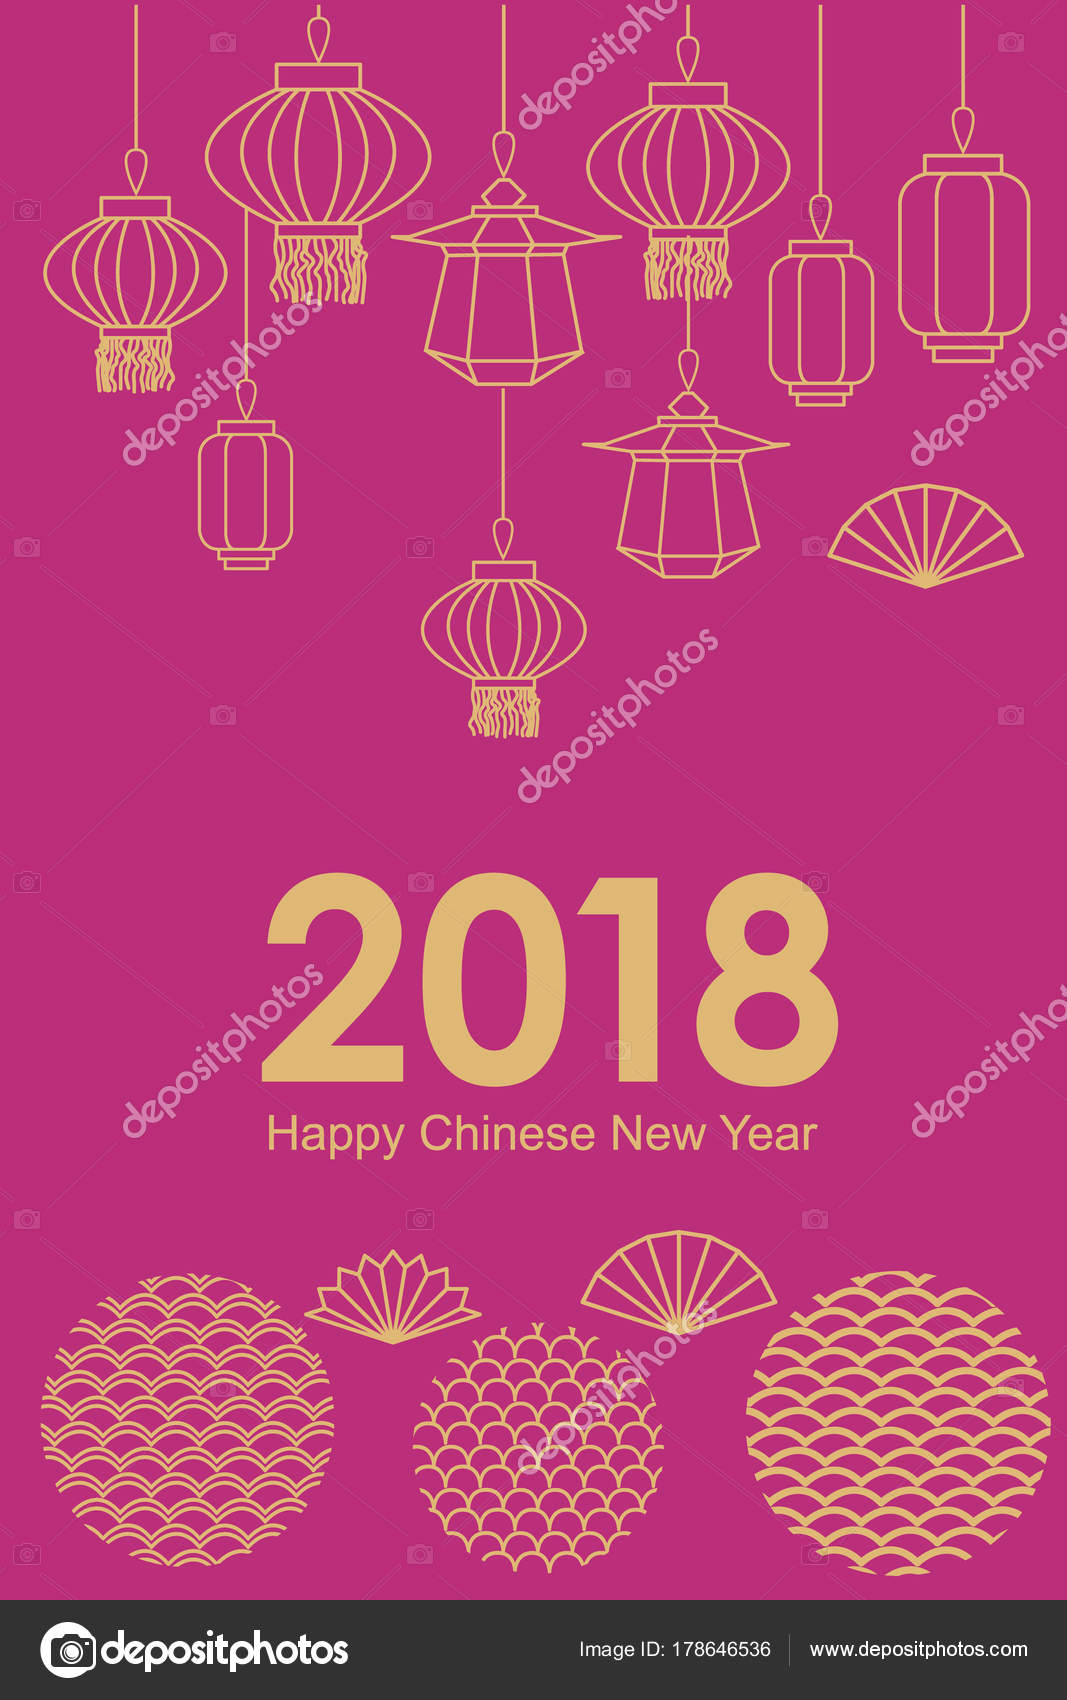 Korean traditional ornaments stock vectors royalty free korean happy chinese new year card abstract geometric ornaments lighting garland and oriental lanterns and kristyandbryce Images